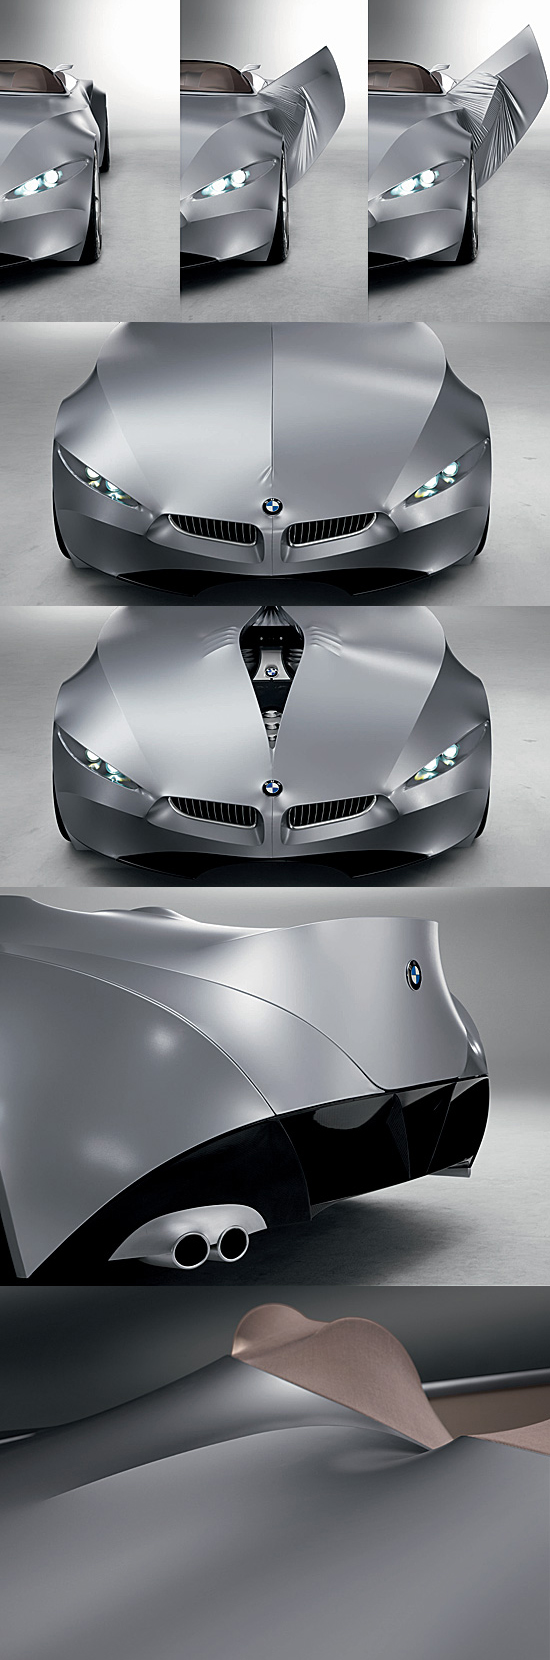 BMW Gina - Light Visionary Model